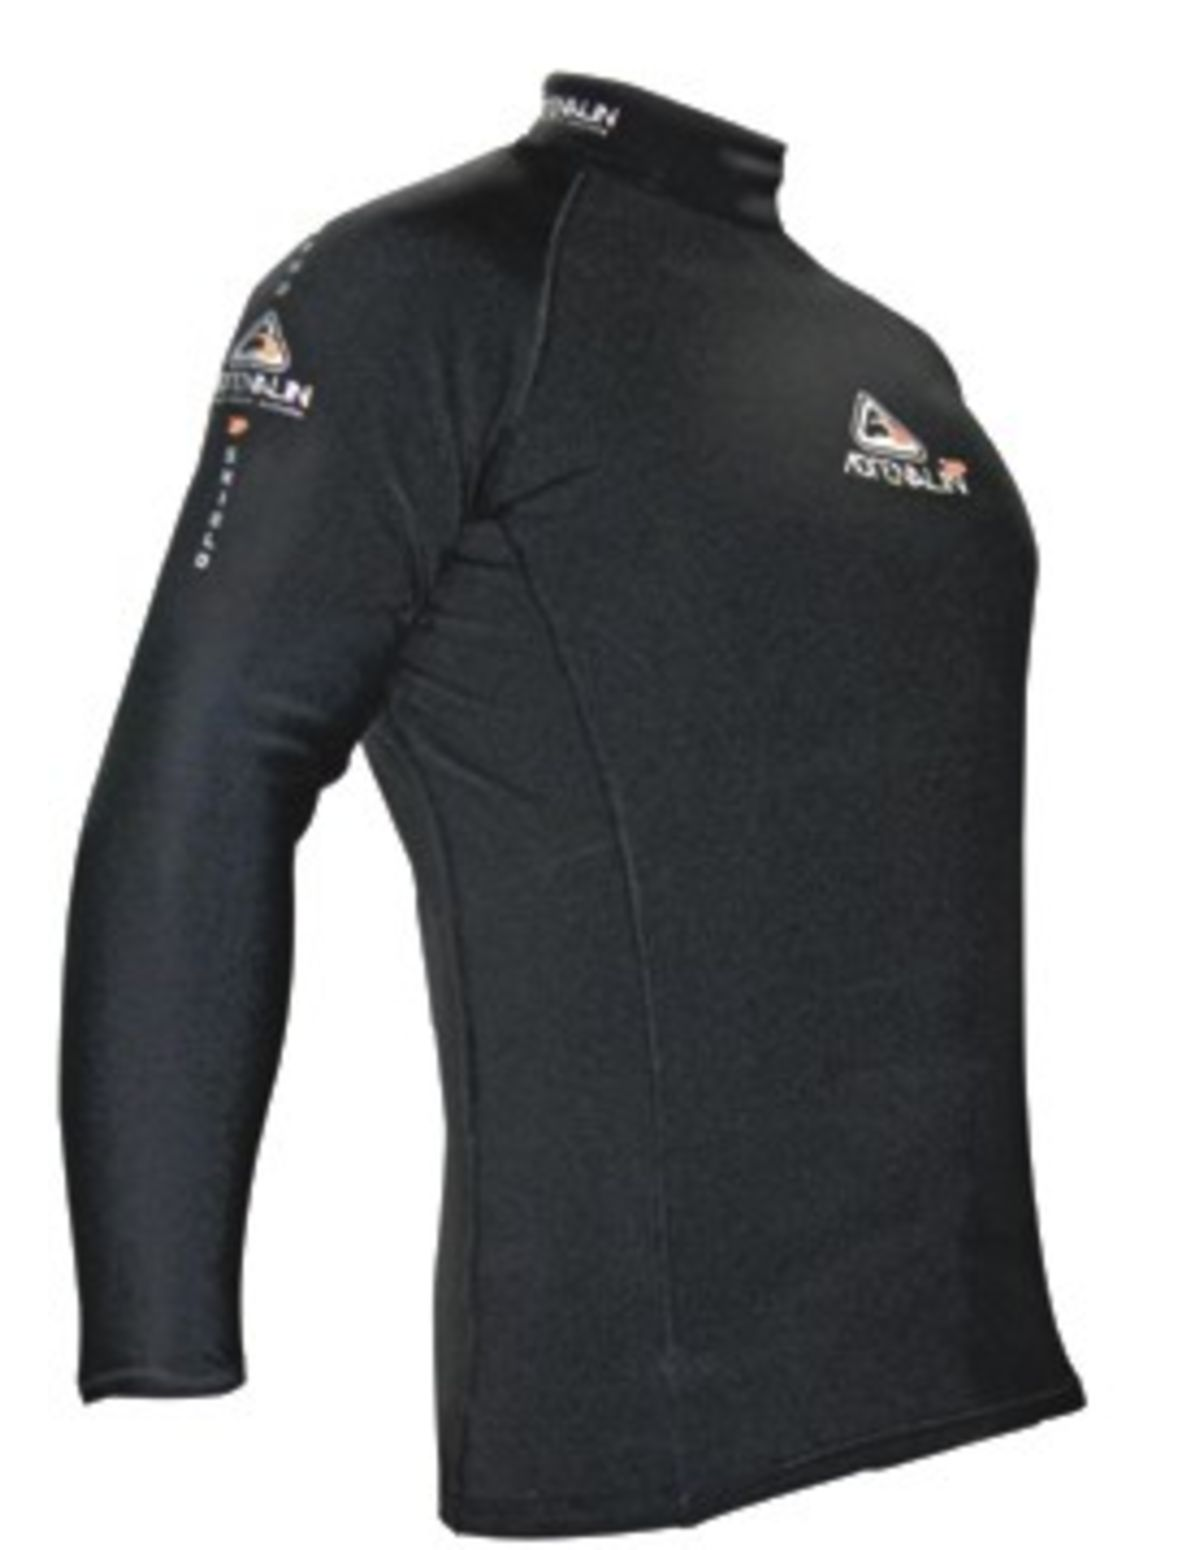 Adrenalin 2P Thermal